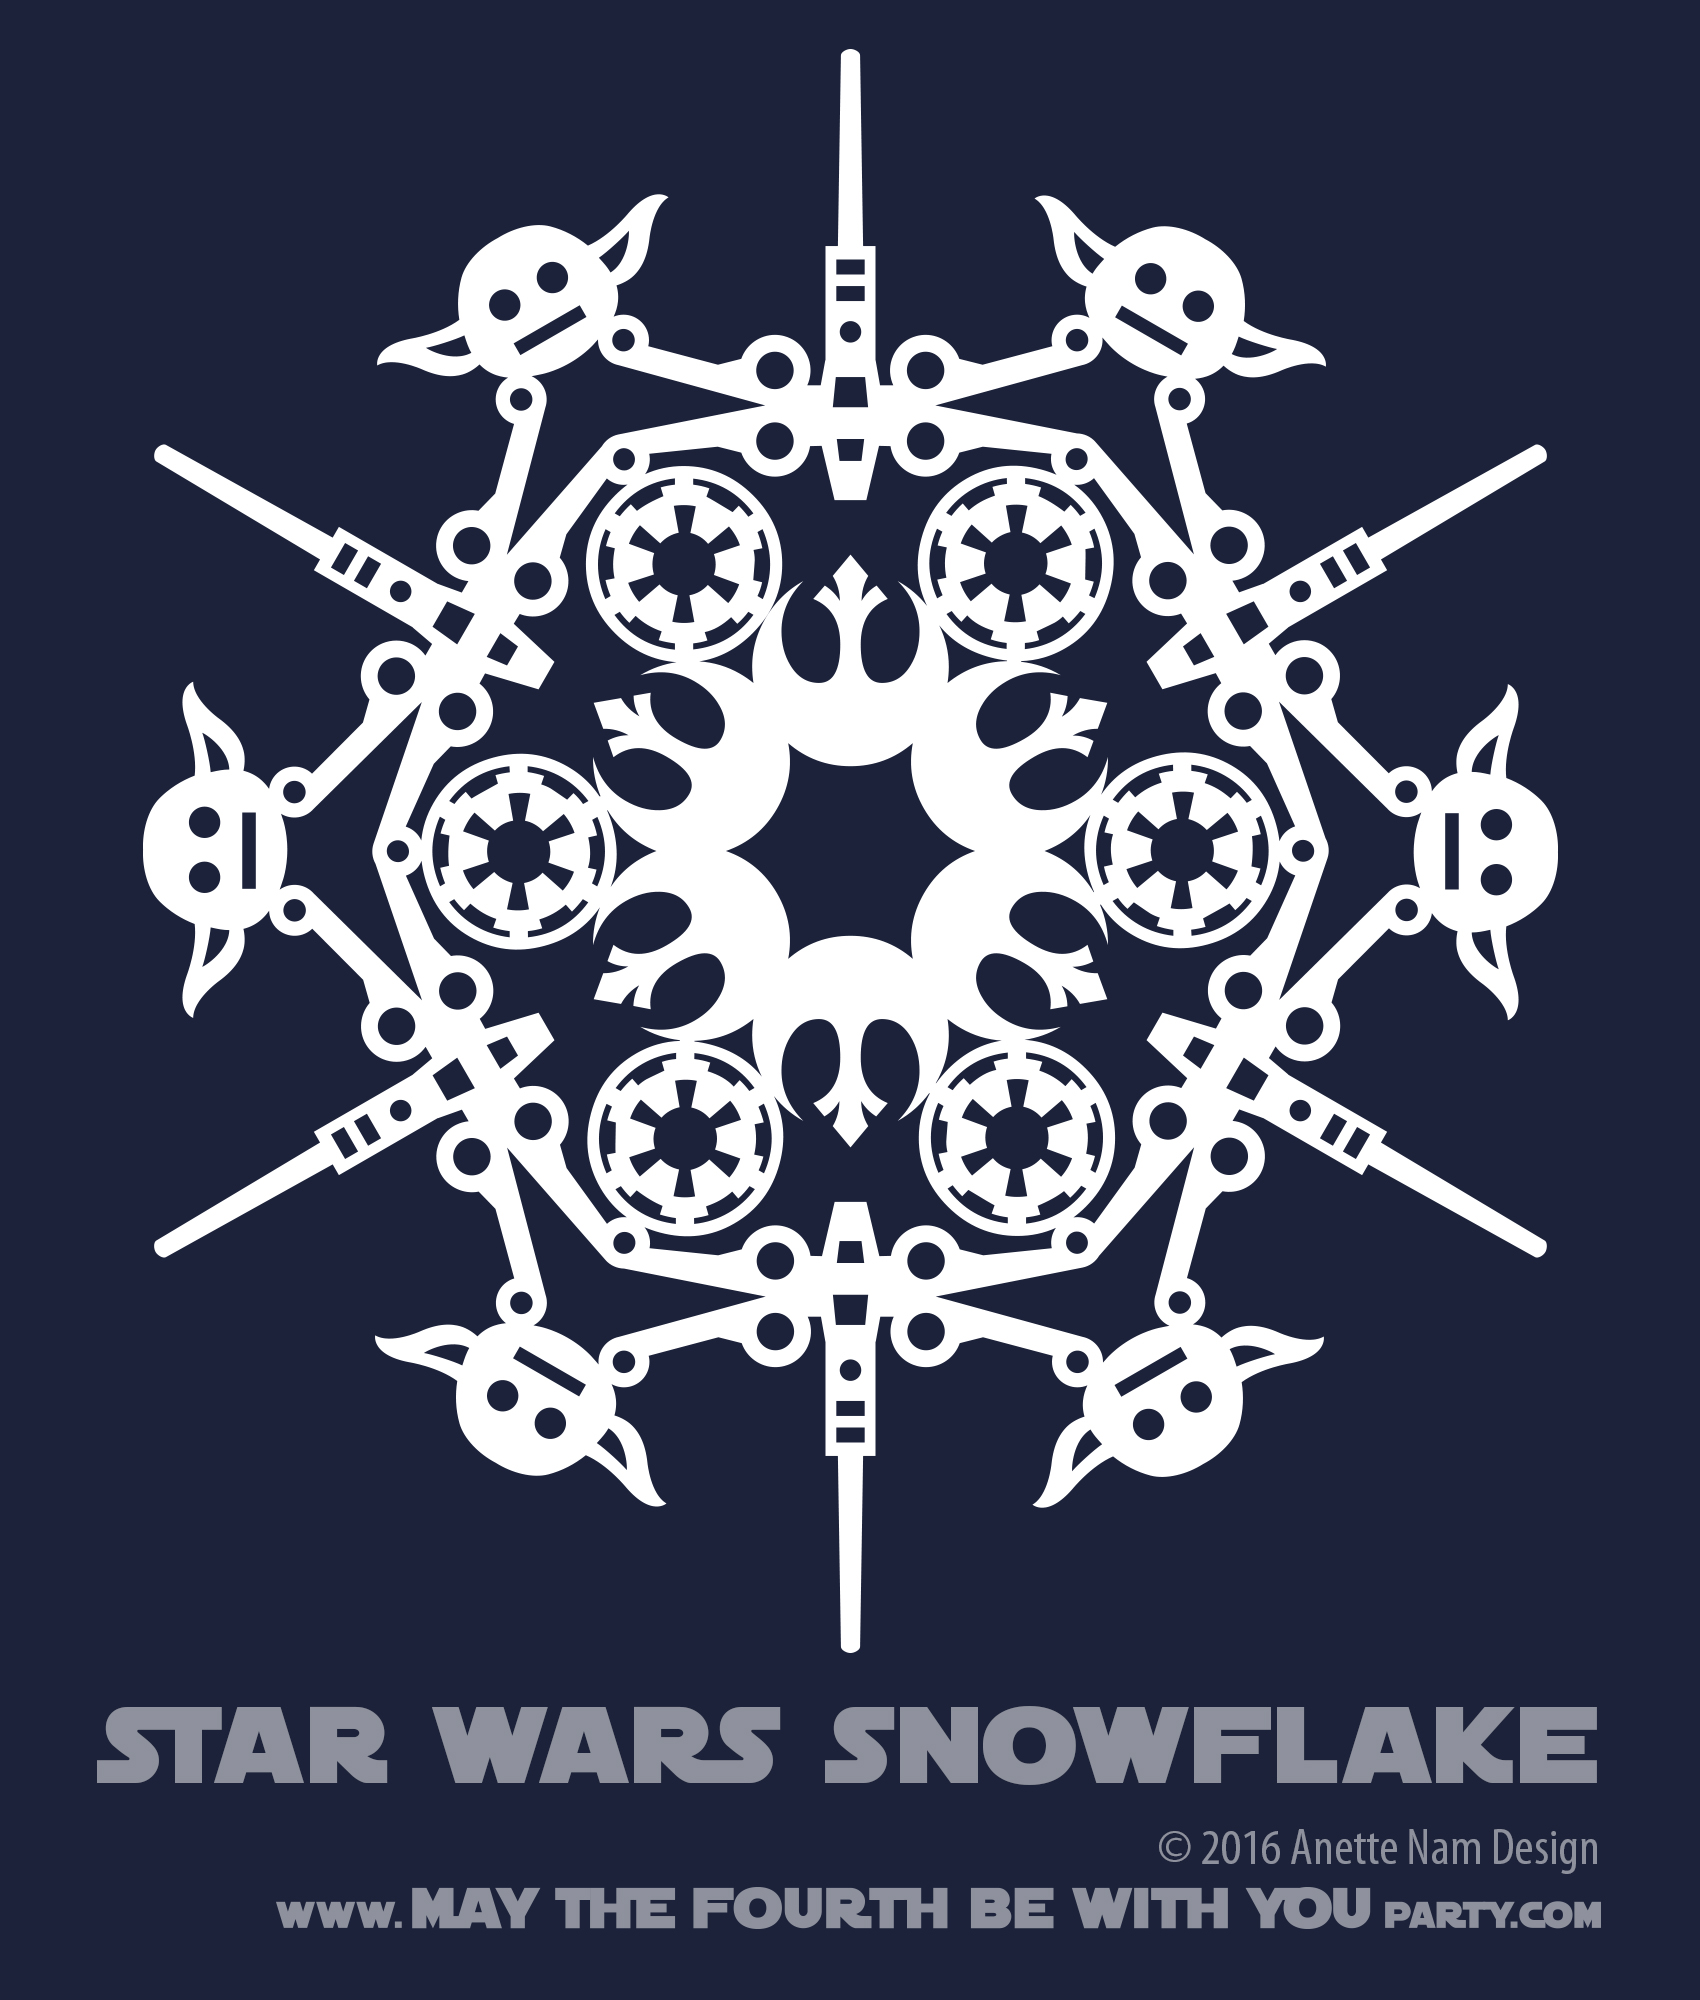 May The 4th Be With You Lesson Plans: Star Wars Snowflake Pattern #4 (downloadable)